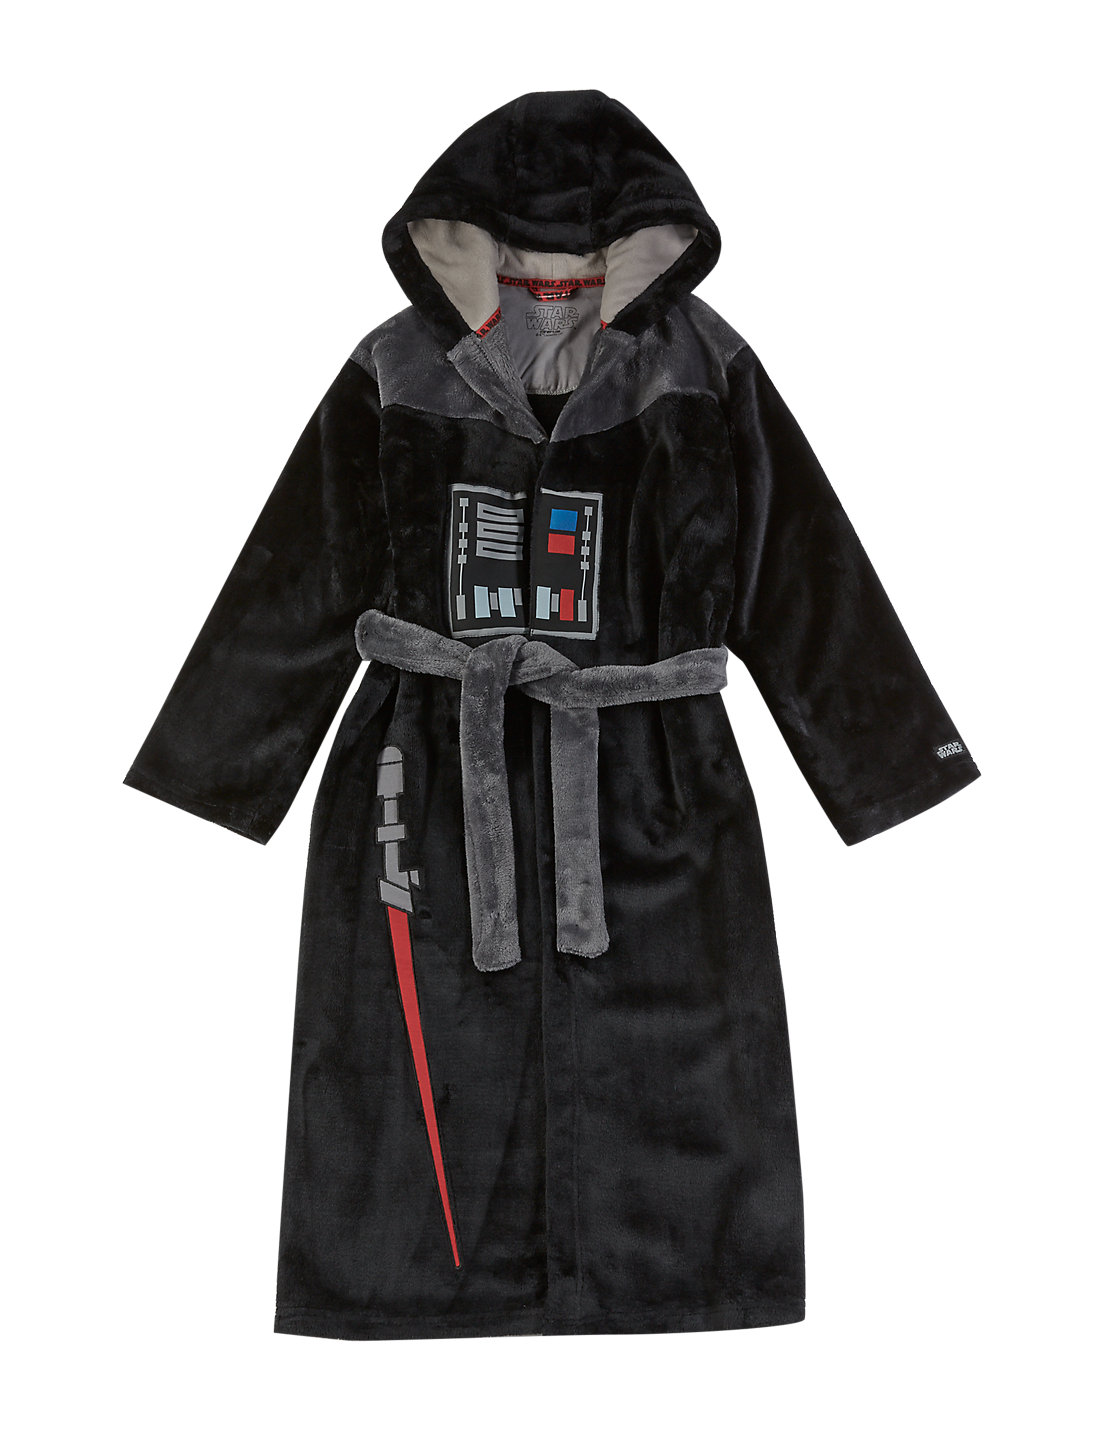 Dorable Kids Star Wars Dressing Gown Gallery - Wedding and flowers ...